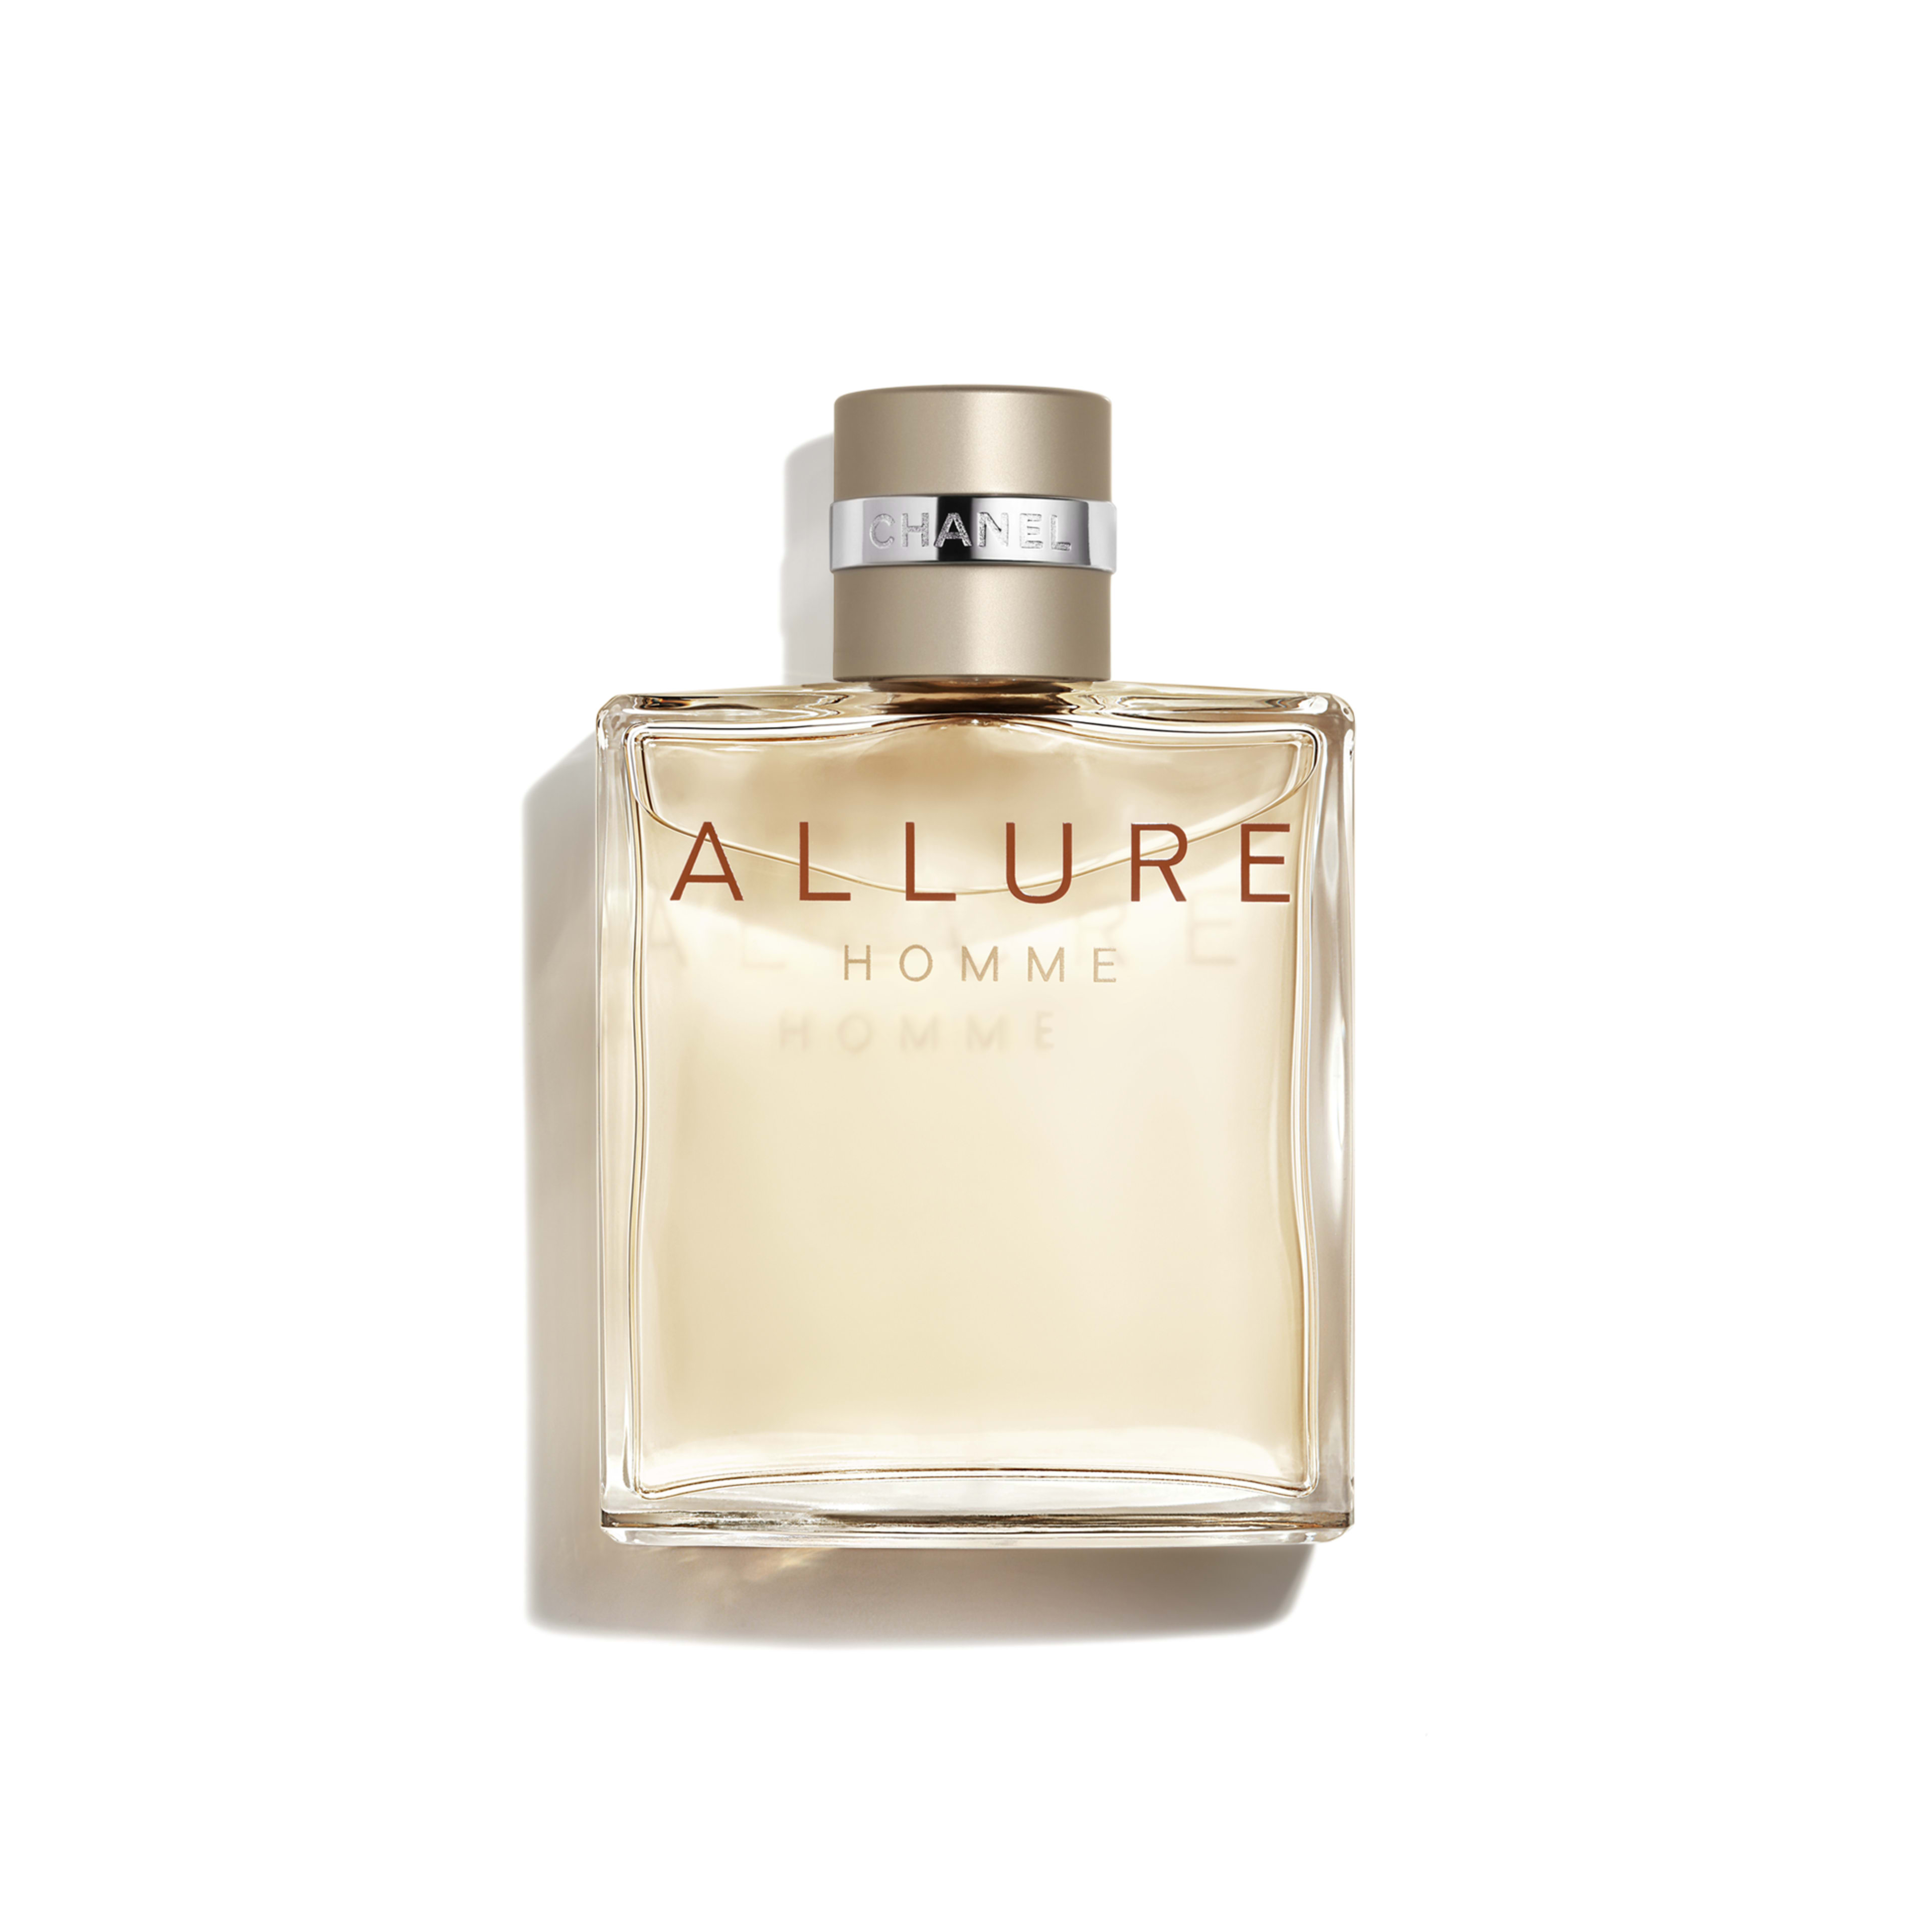 allure chanel homme